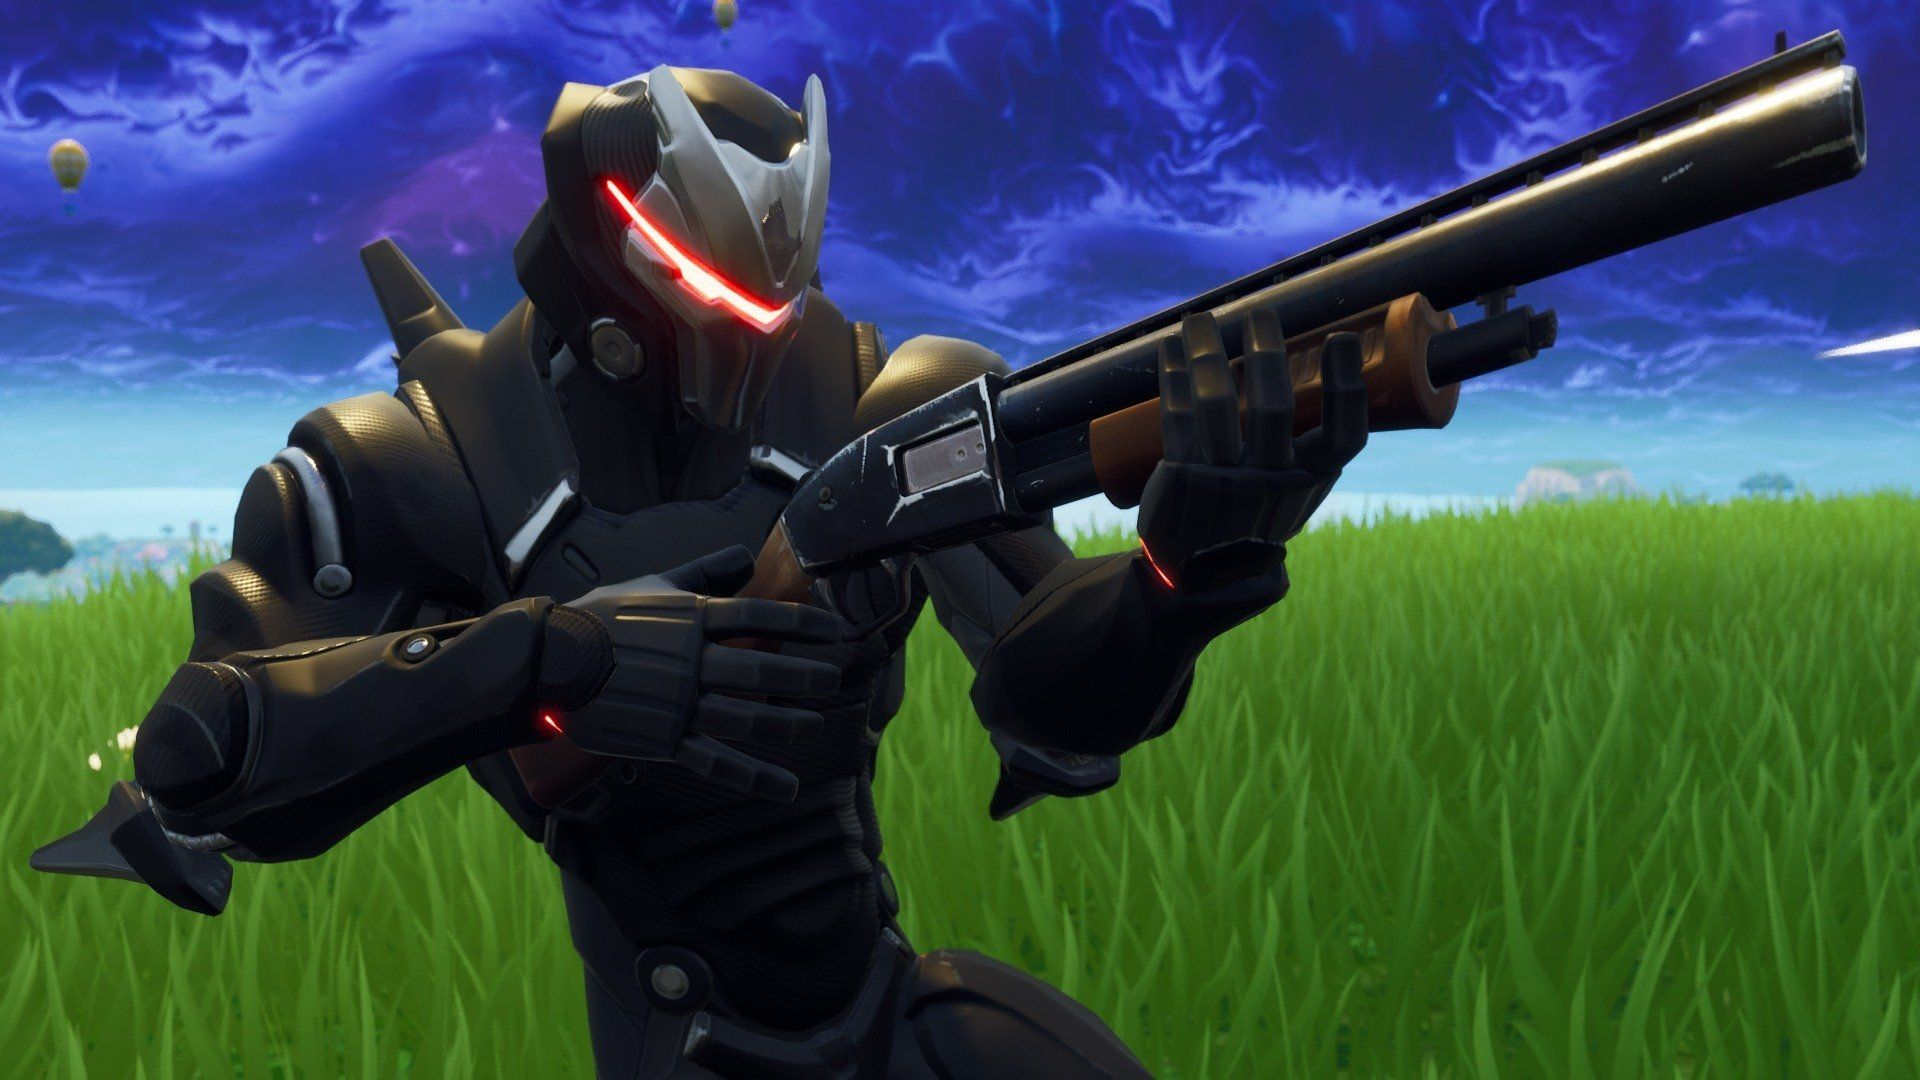 1920x1080 Fortnite May Be Getting a Sniper Rifle That Can Shoot Through Walls